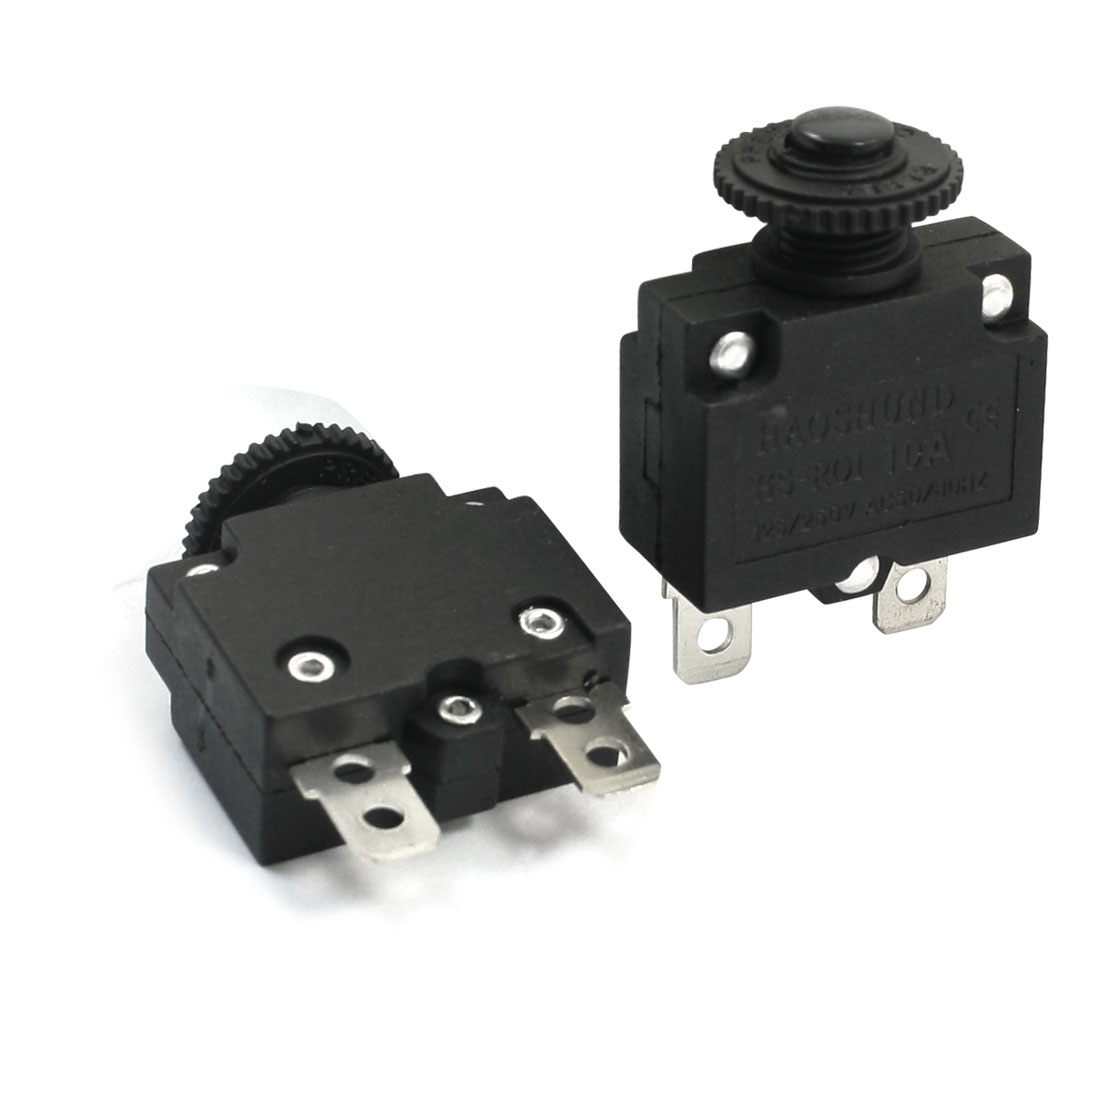 2Pcs AC 125V 250V 10A 10mm Thread Soldering Black Push Reset Button Normal Close Circuit Breaker Overload Protector